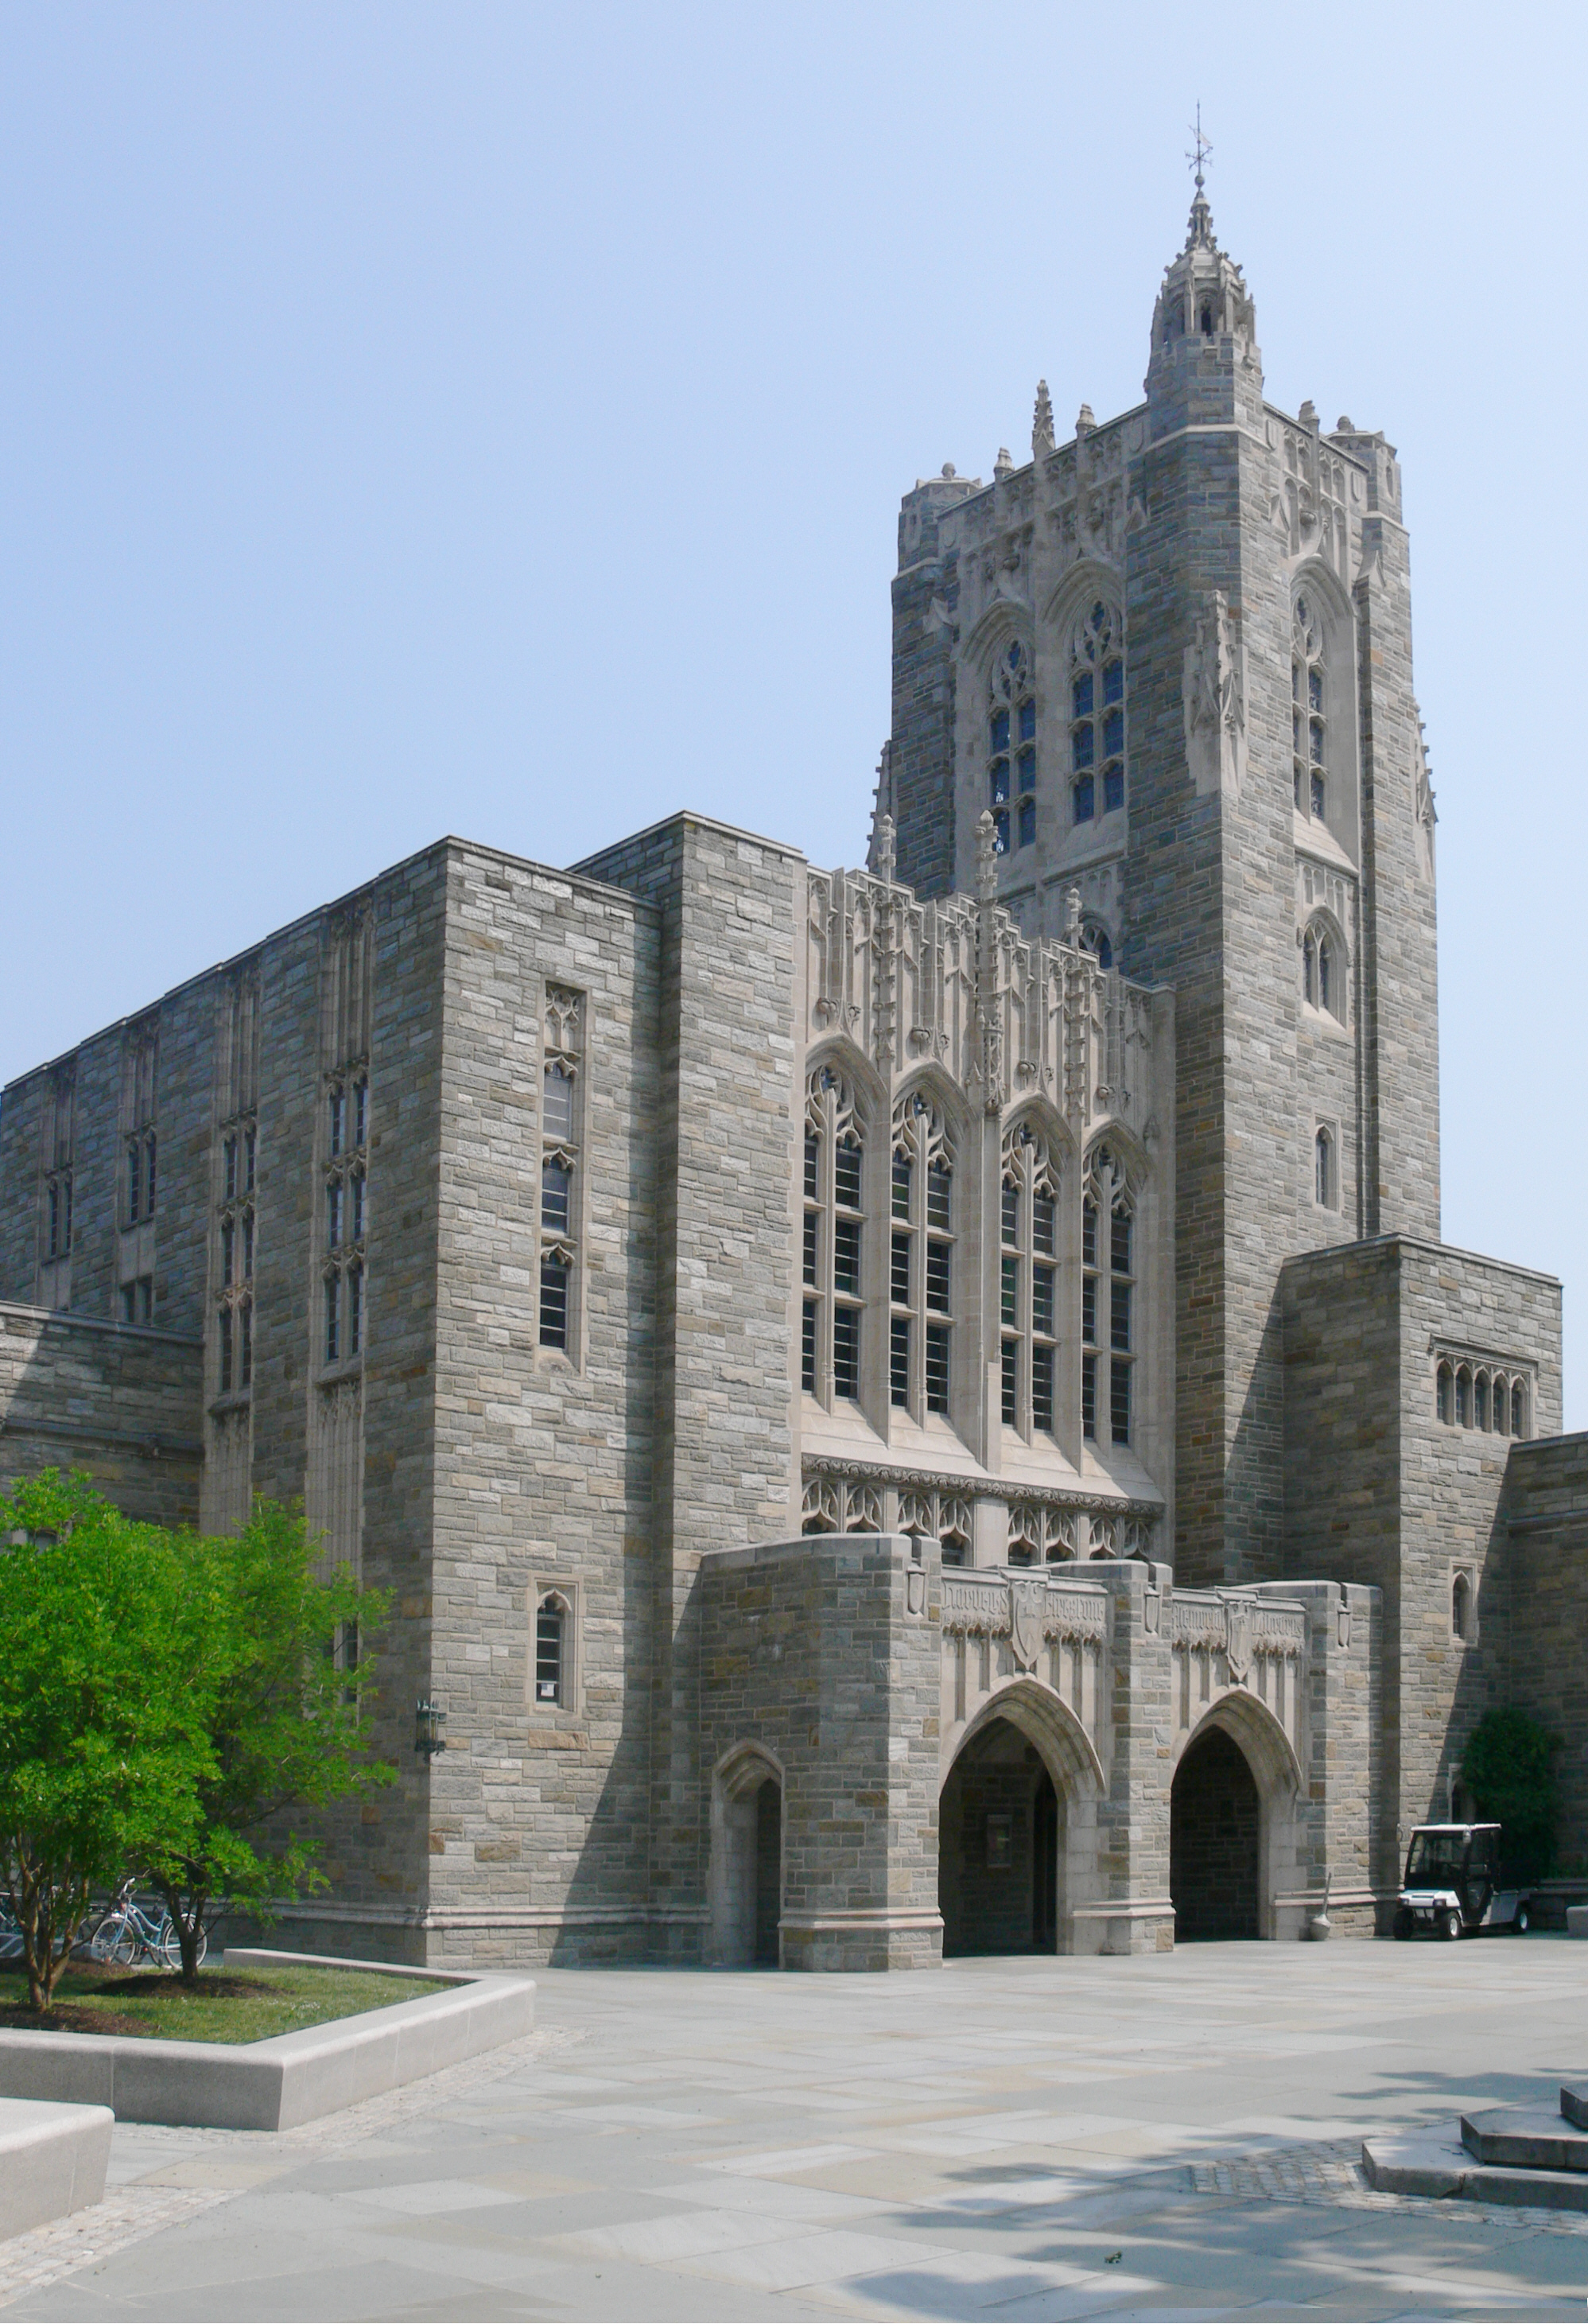 2007 Photo of the Harvey S. Firestone Memorial Library of Princeton University